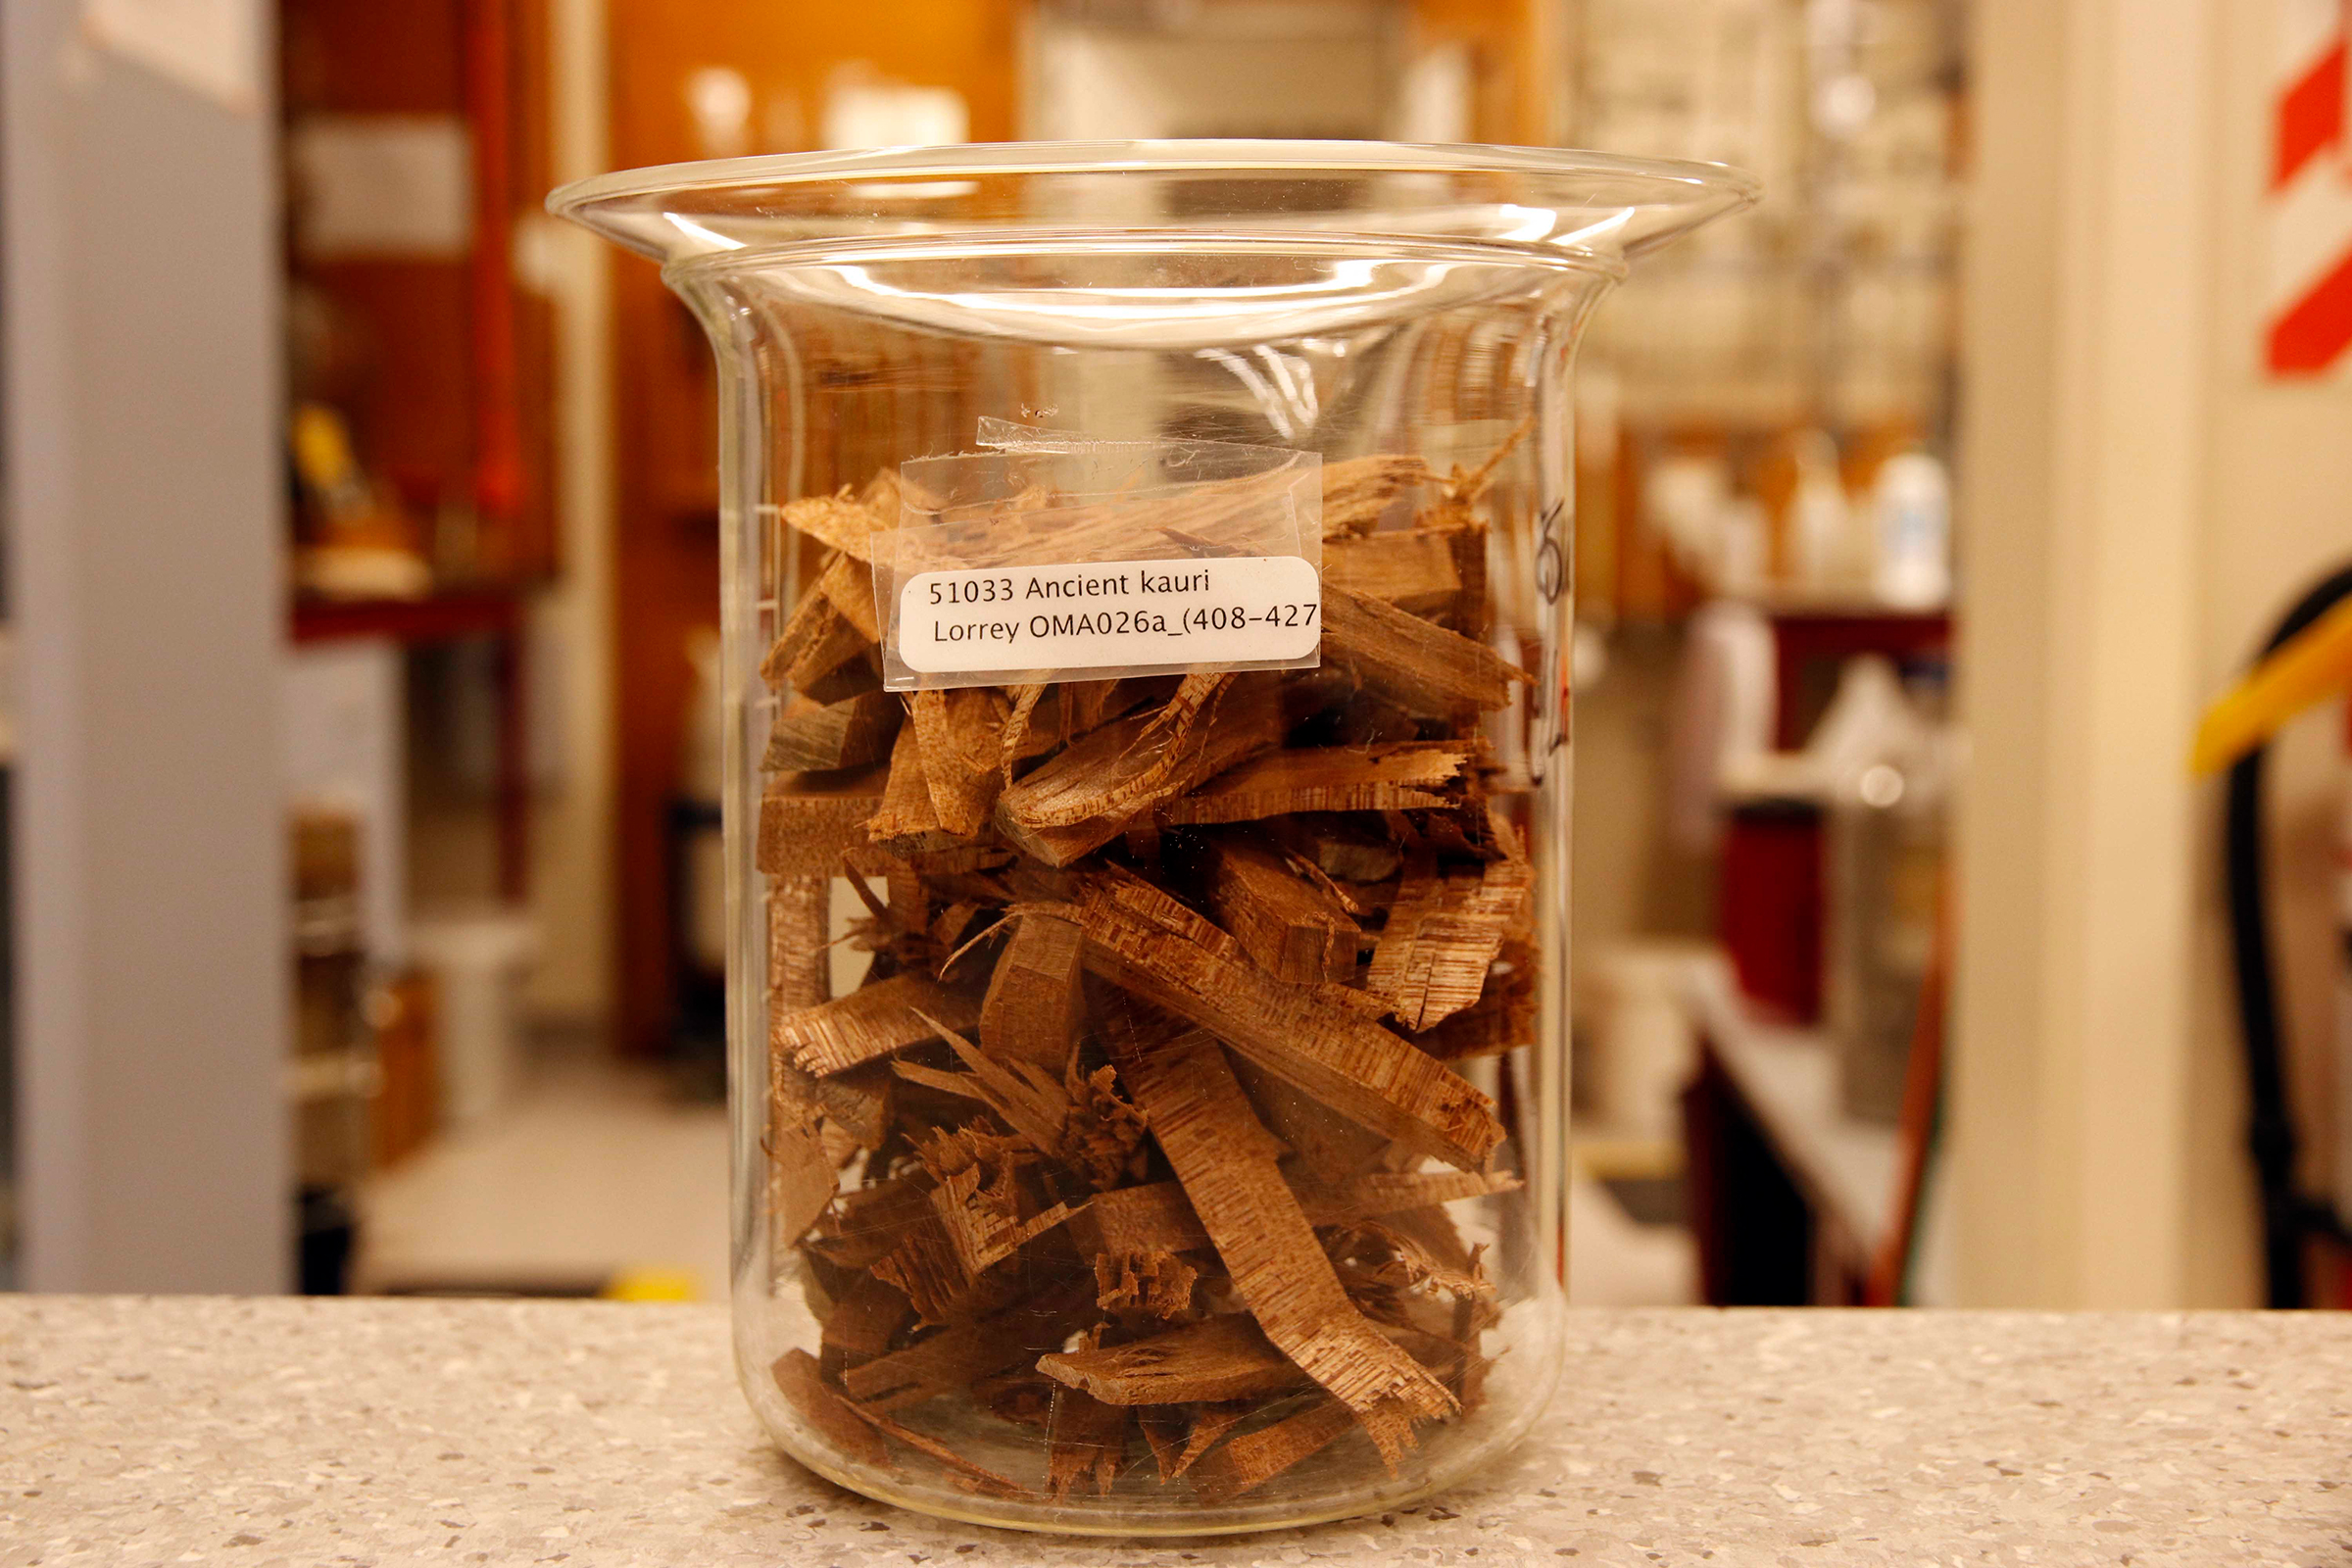 Chunks of kauri wood from one of Lorrey's biscuits form the starting point for the radiocarbon dating process. Photograph by Kate Evans.